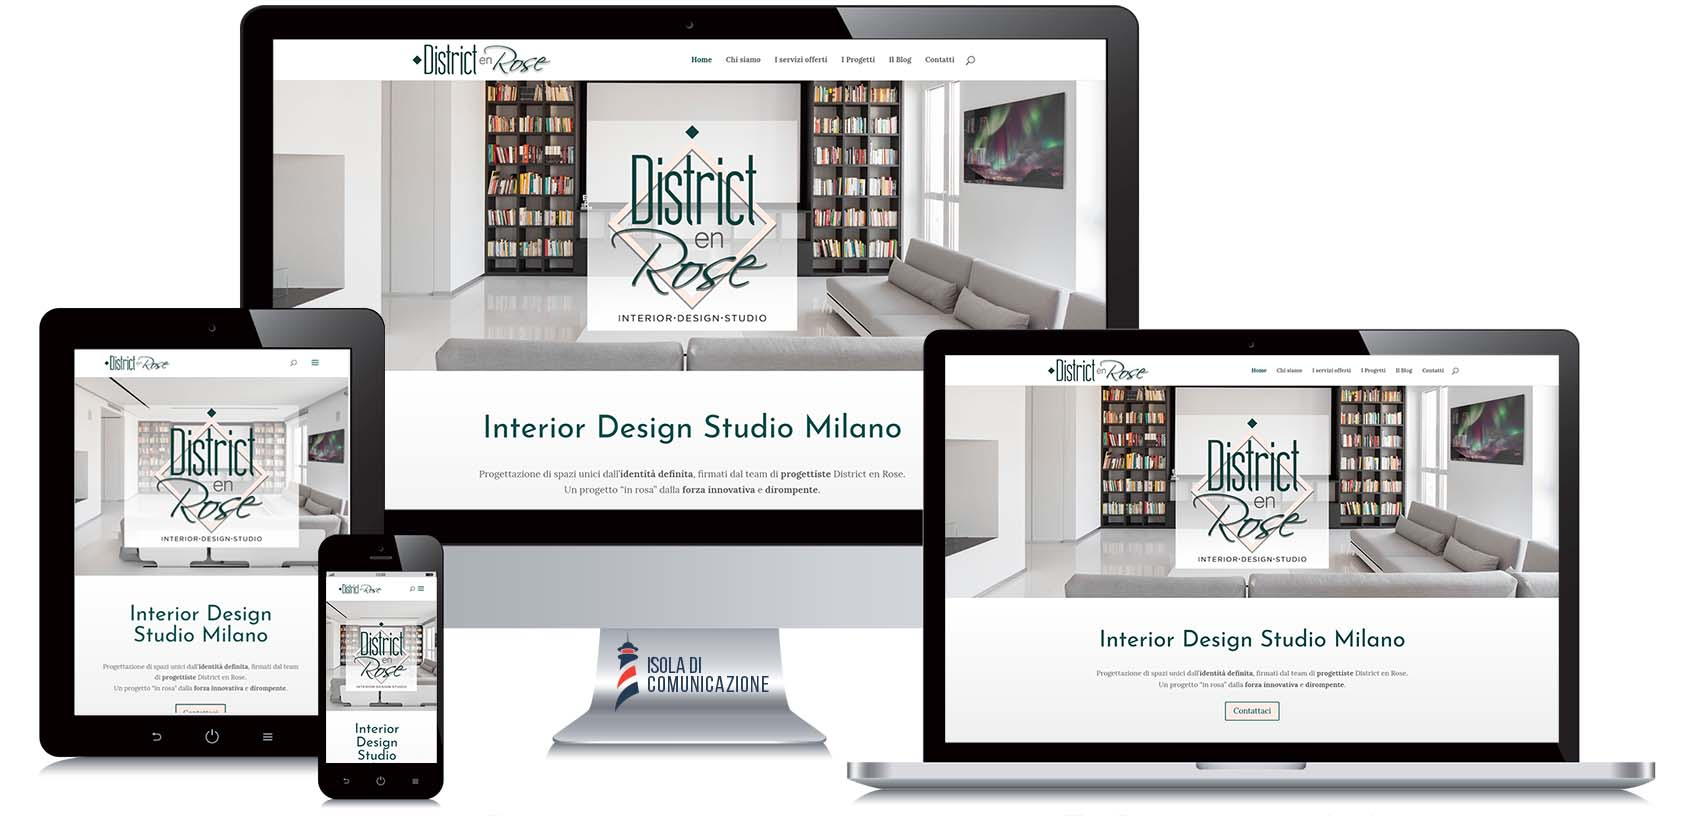 Responsive design, sito web per studio di interior design District en Rose